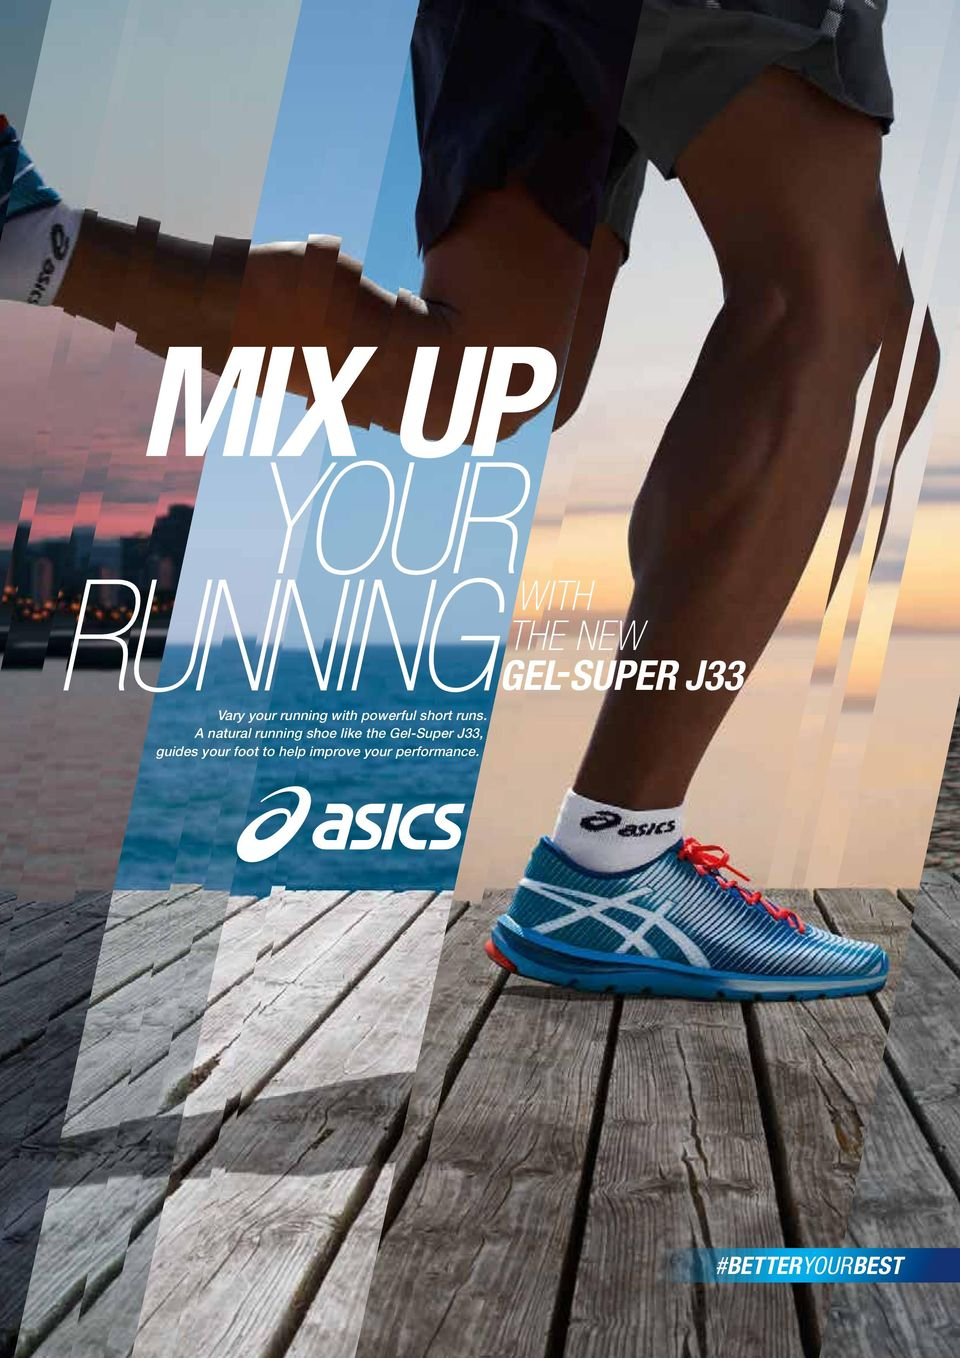 A natural running shoe like the Gel-Super J33,